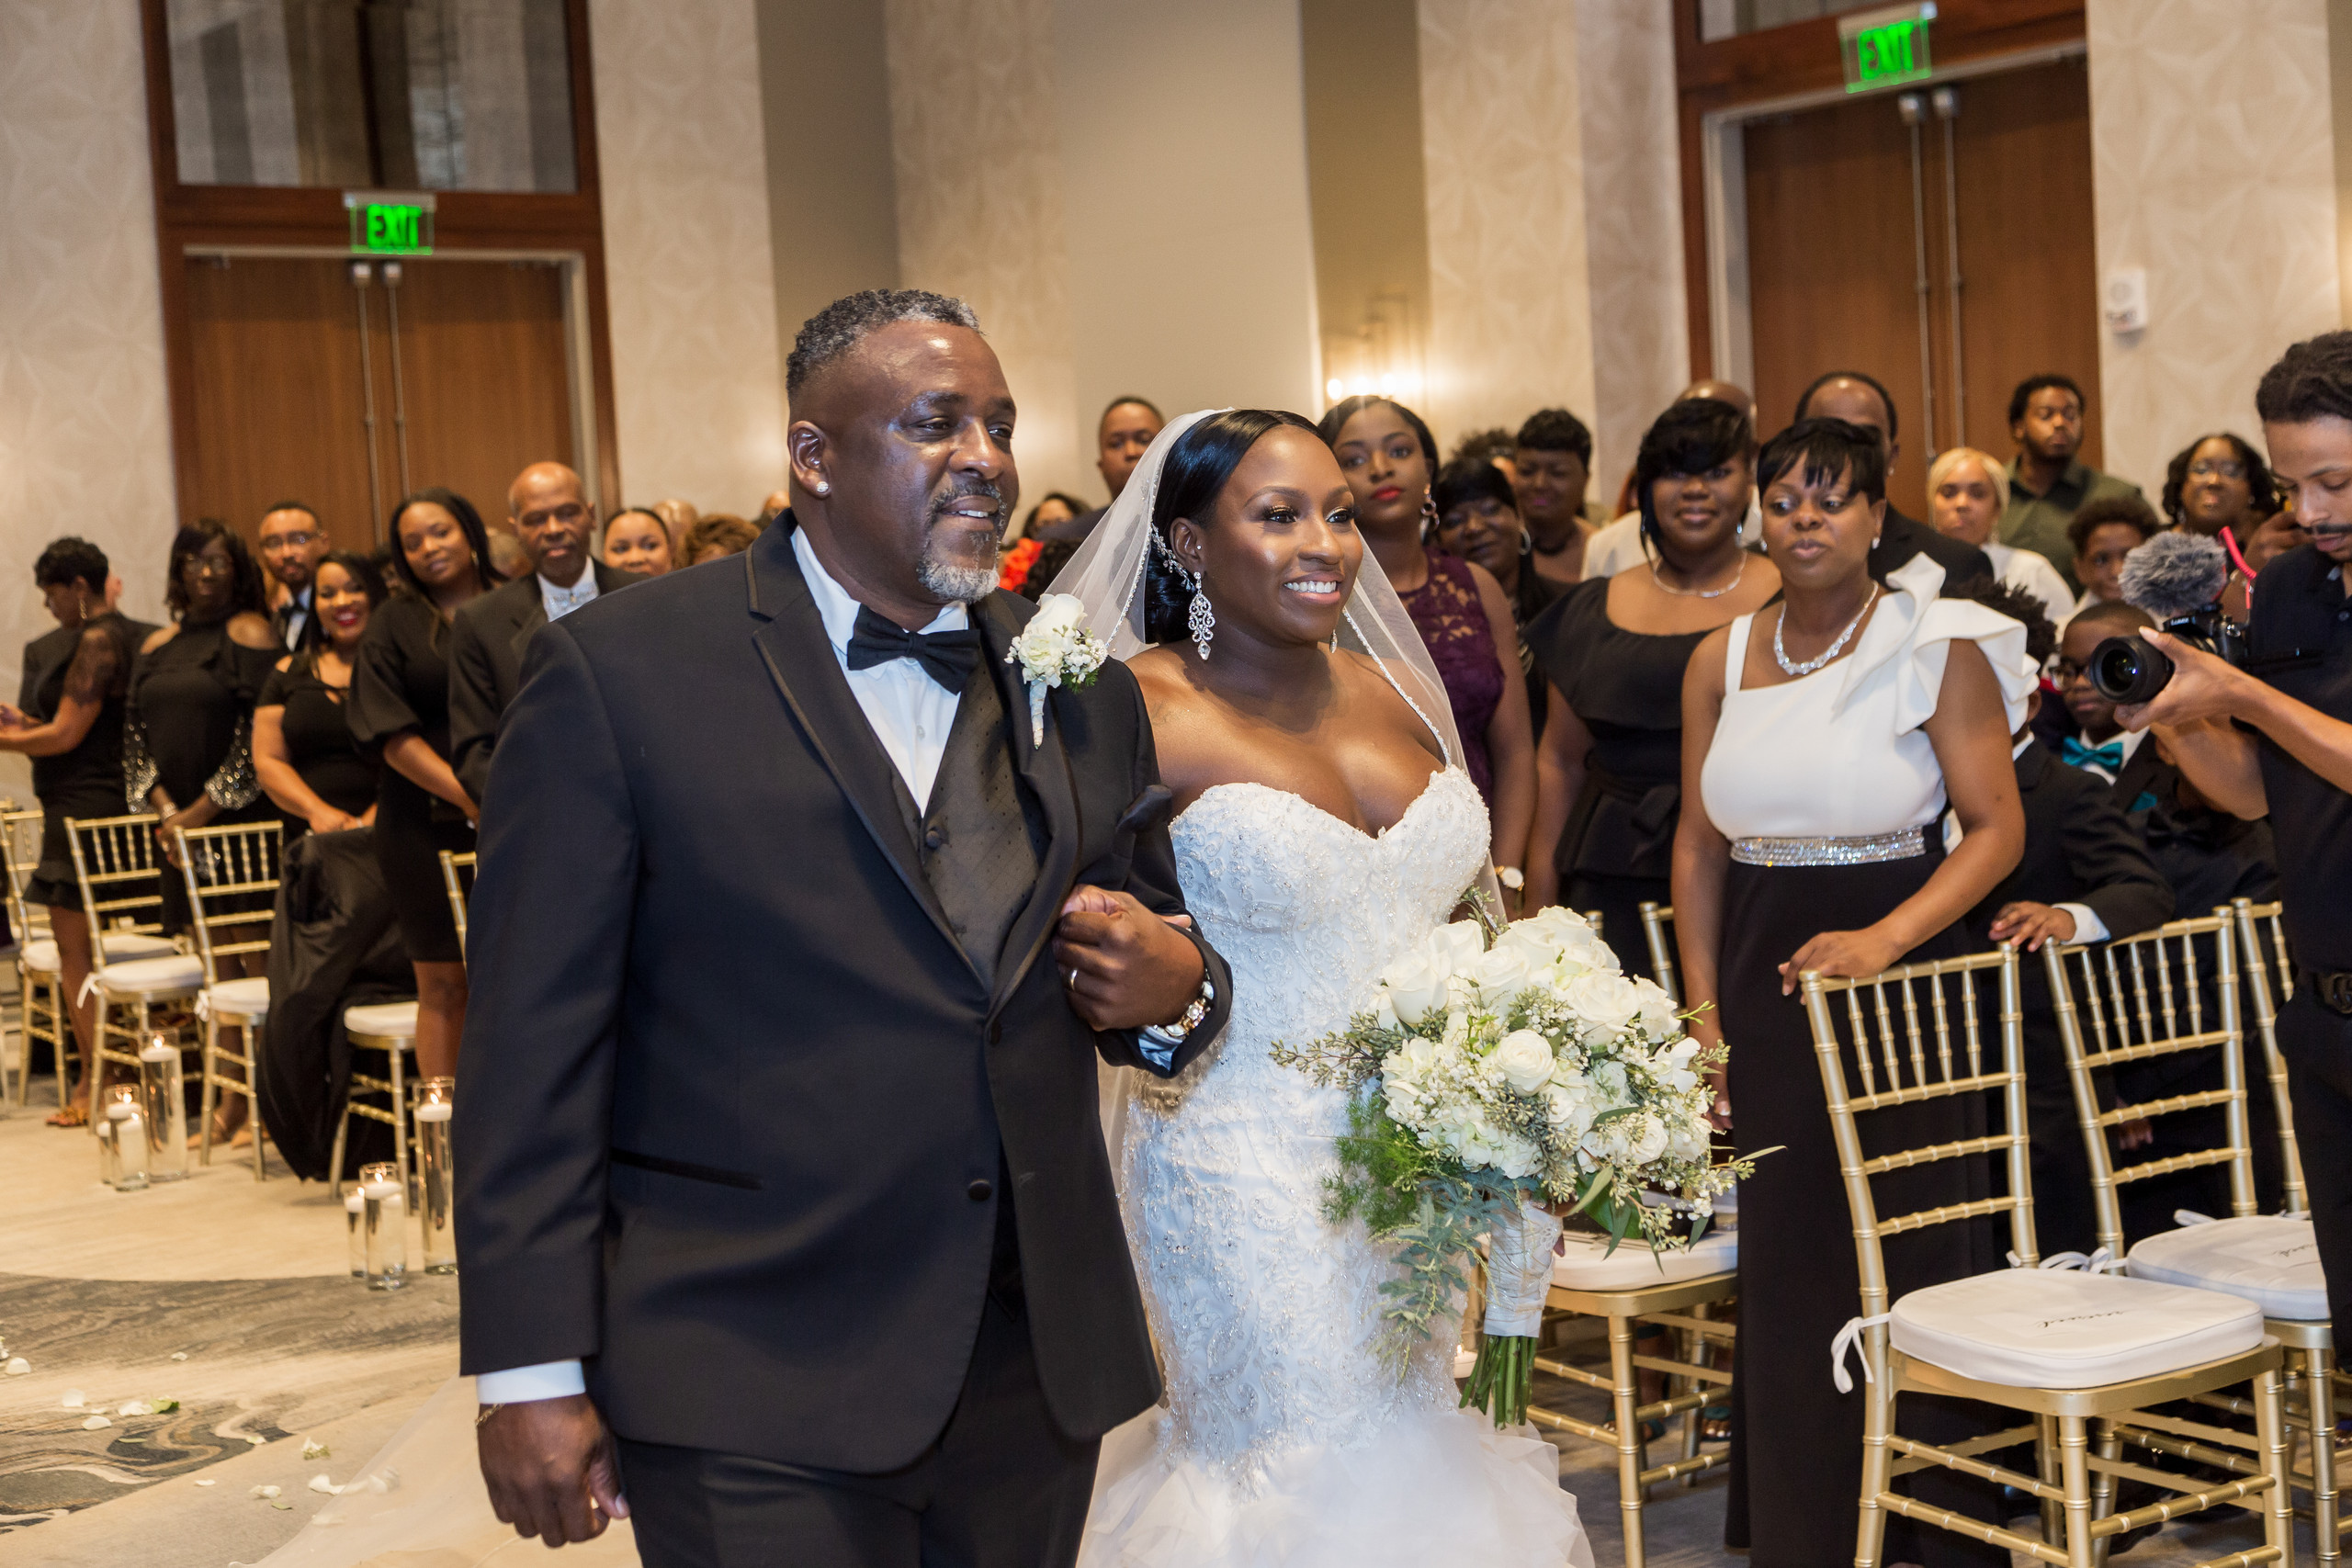 The bride and her father walking down the isle during the wedding ceremony at the Hilton Main in Norfolk, Virginia.